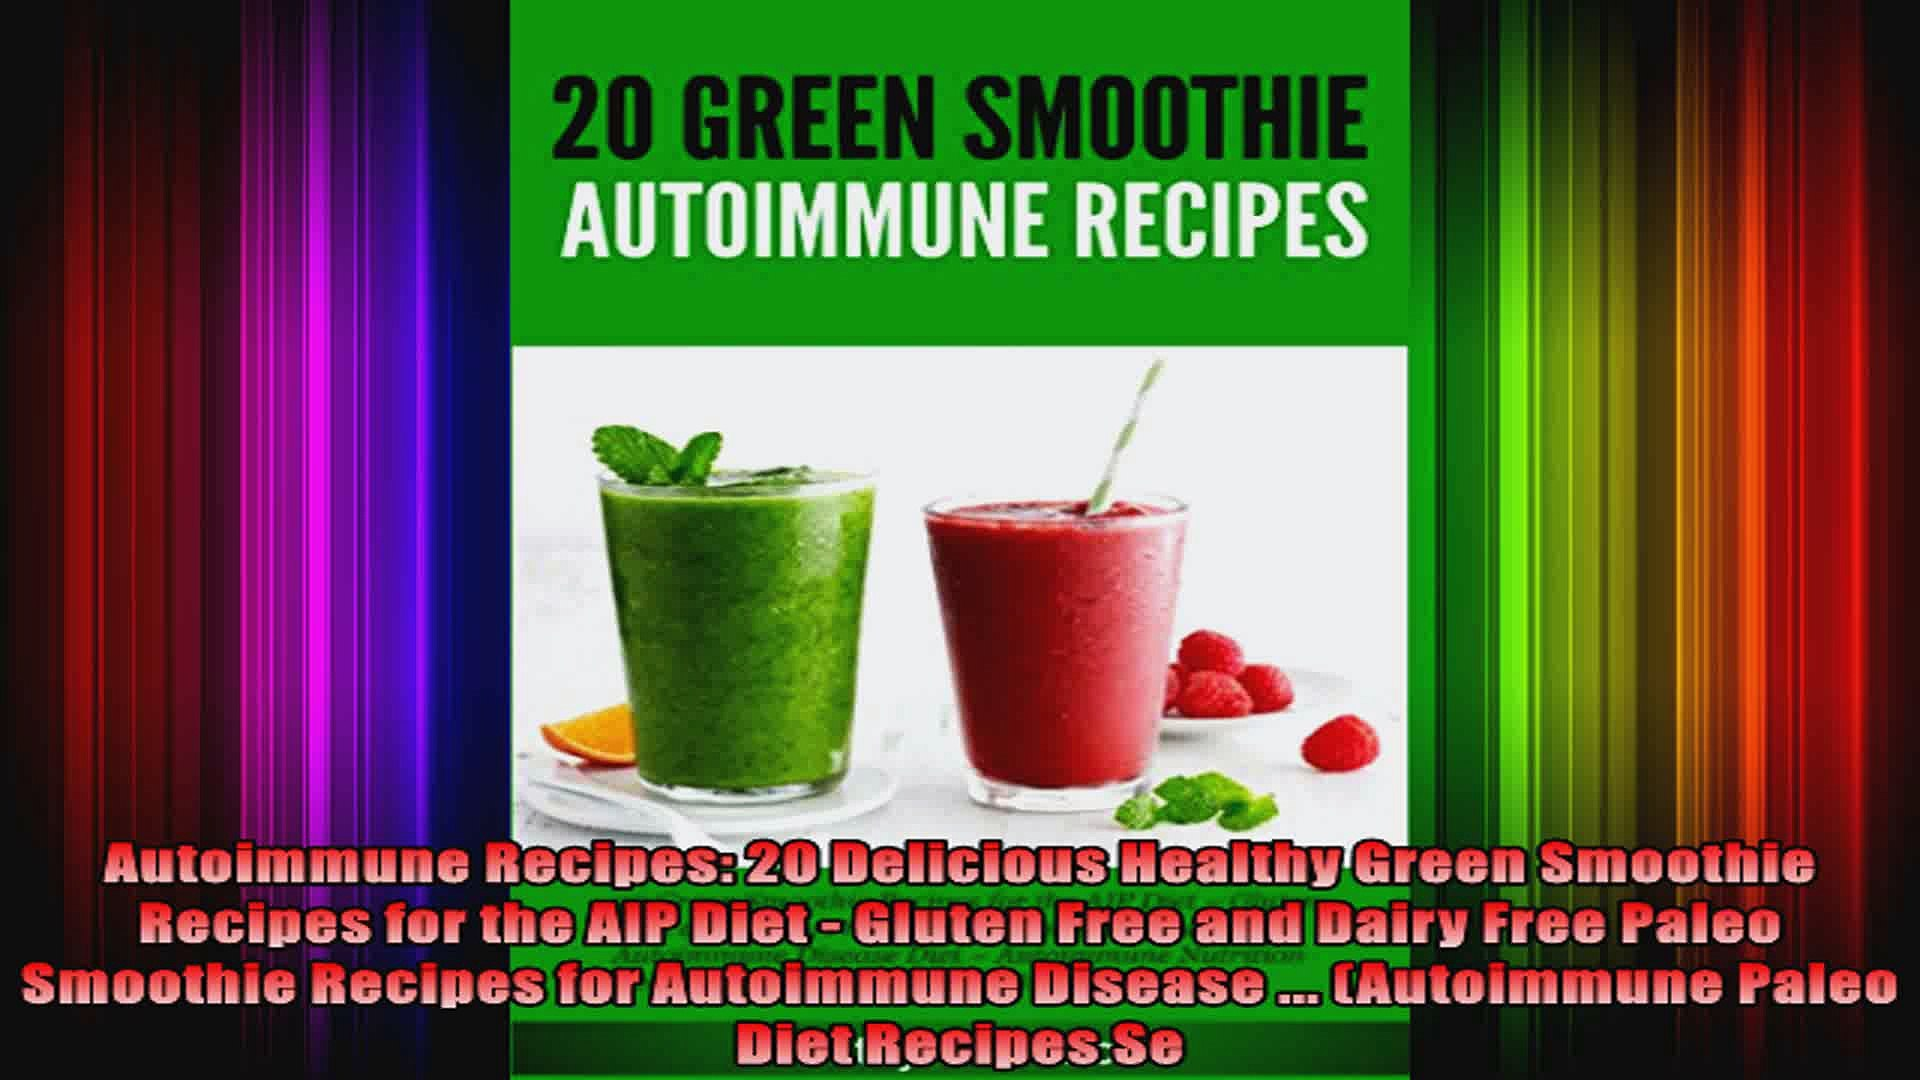 Autoimmune Recipes 20 Delicious Healthy Green Smoothie Recipes for the AIP  Diet Gluten